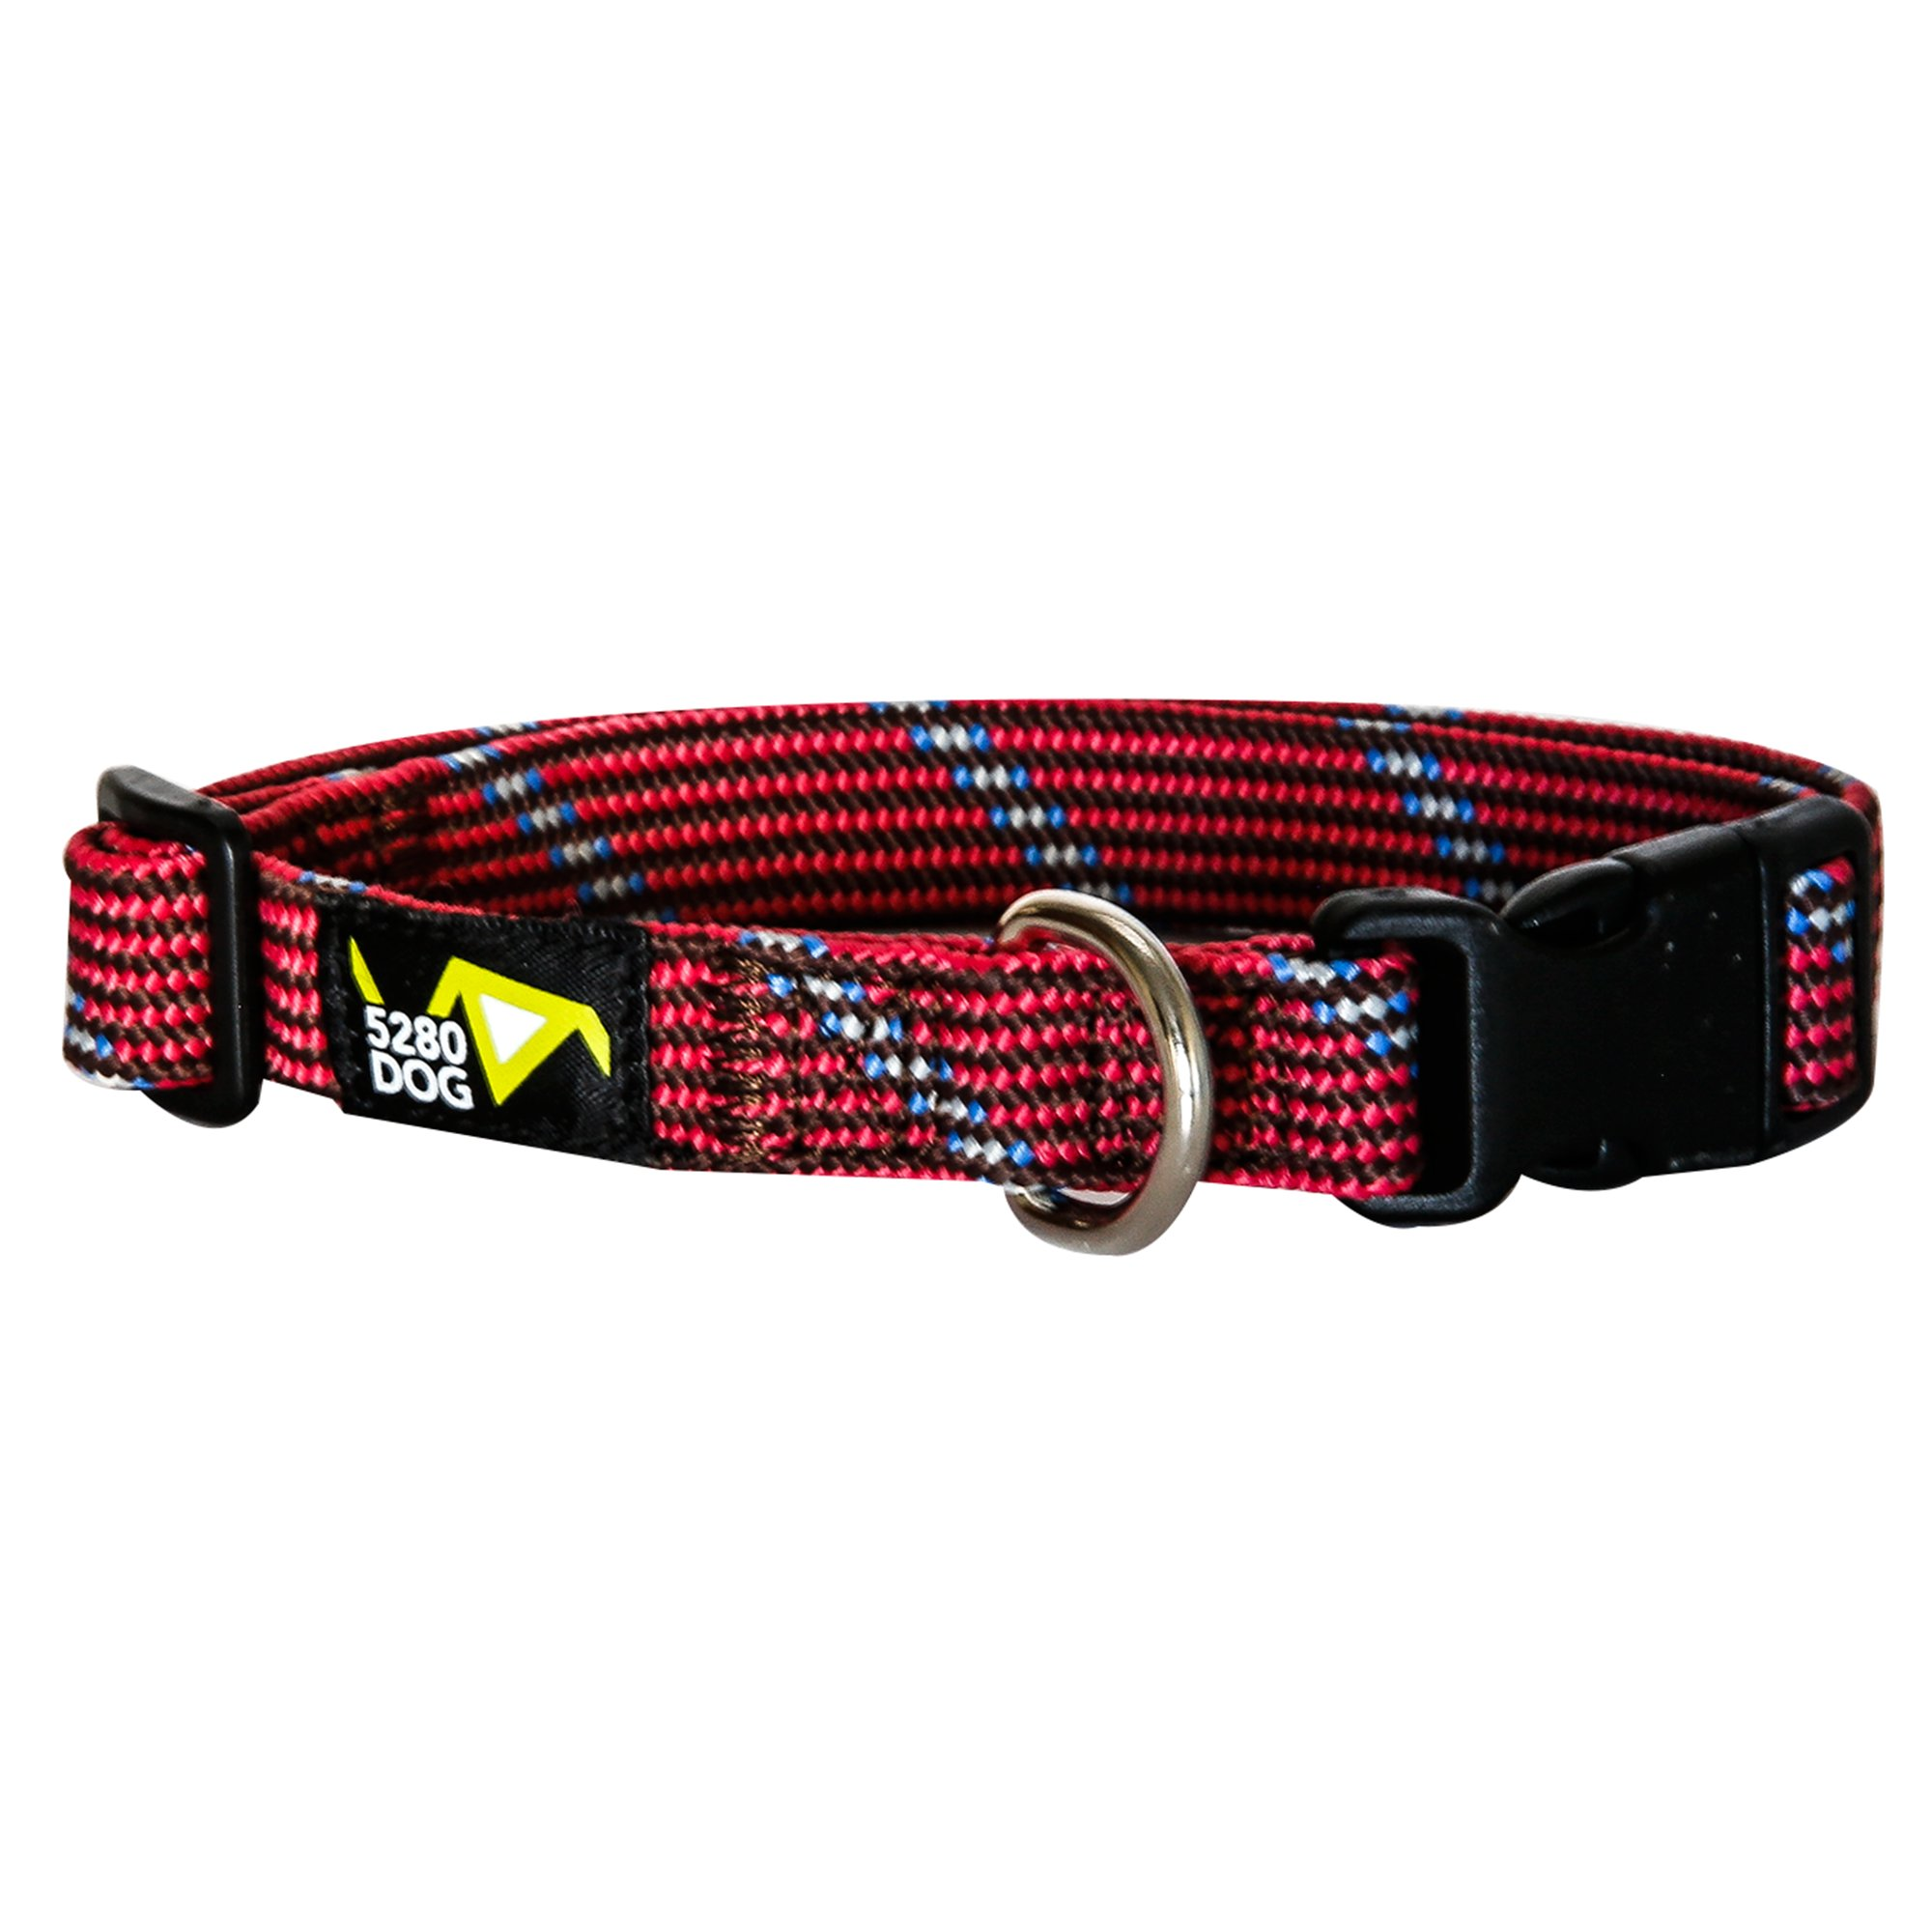 5280DOG Red Braided Collar, Medium